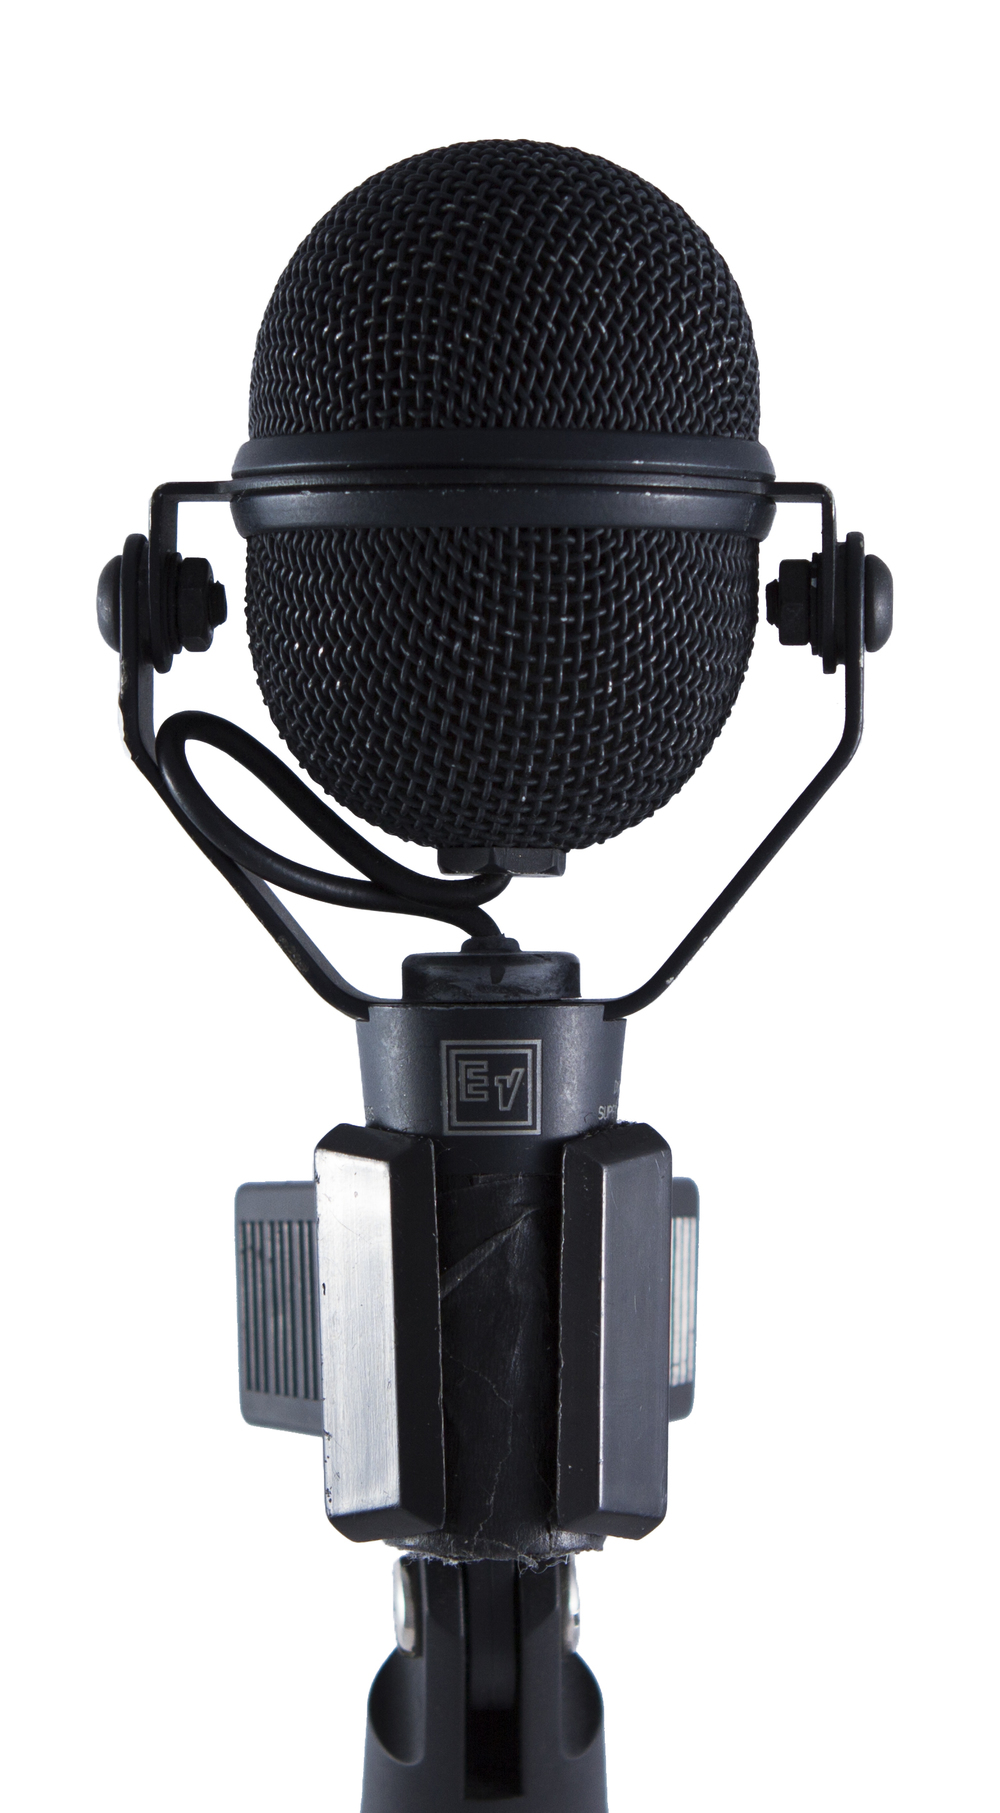 Electro Voice N/D 408 A - $20 day